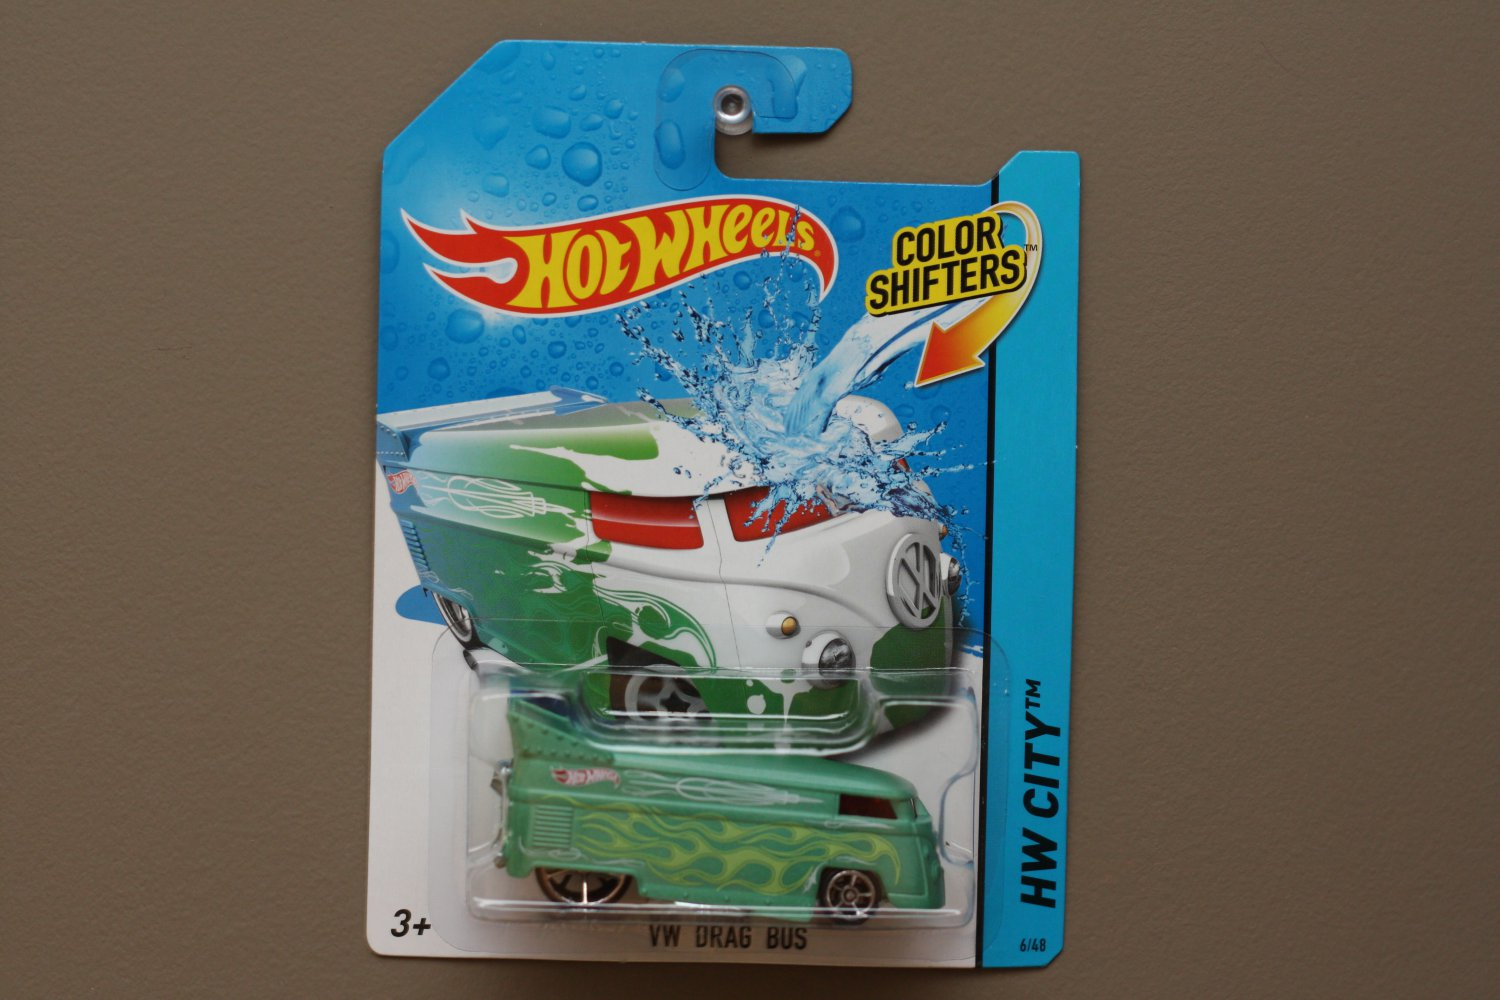 Hot Wheels 2014 Color Shifters Volkswagen Drag Bus (green to white)